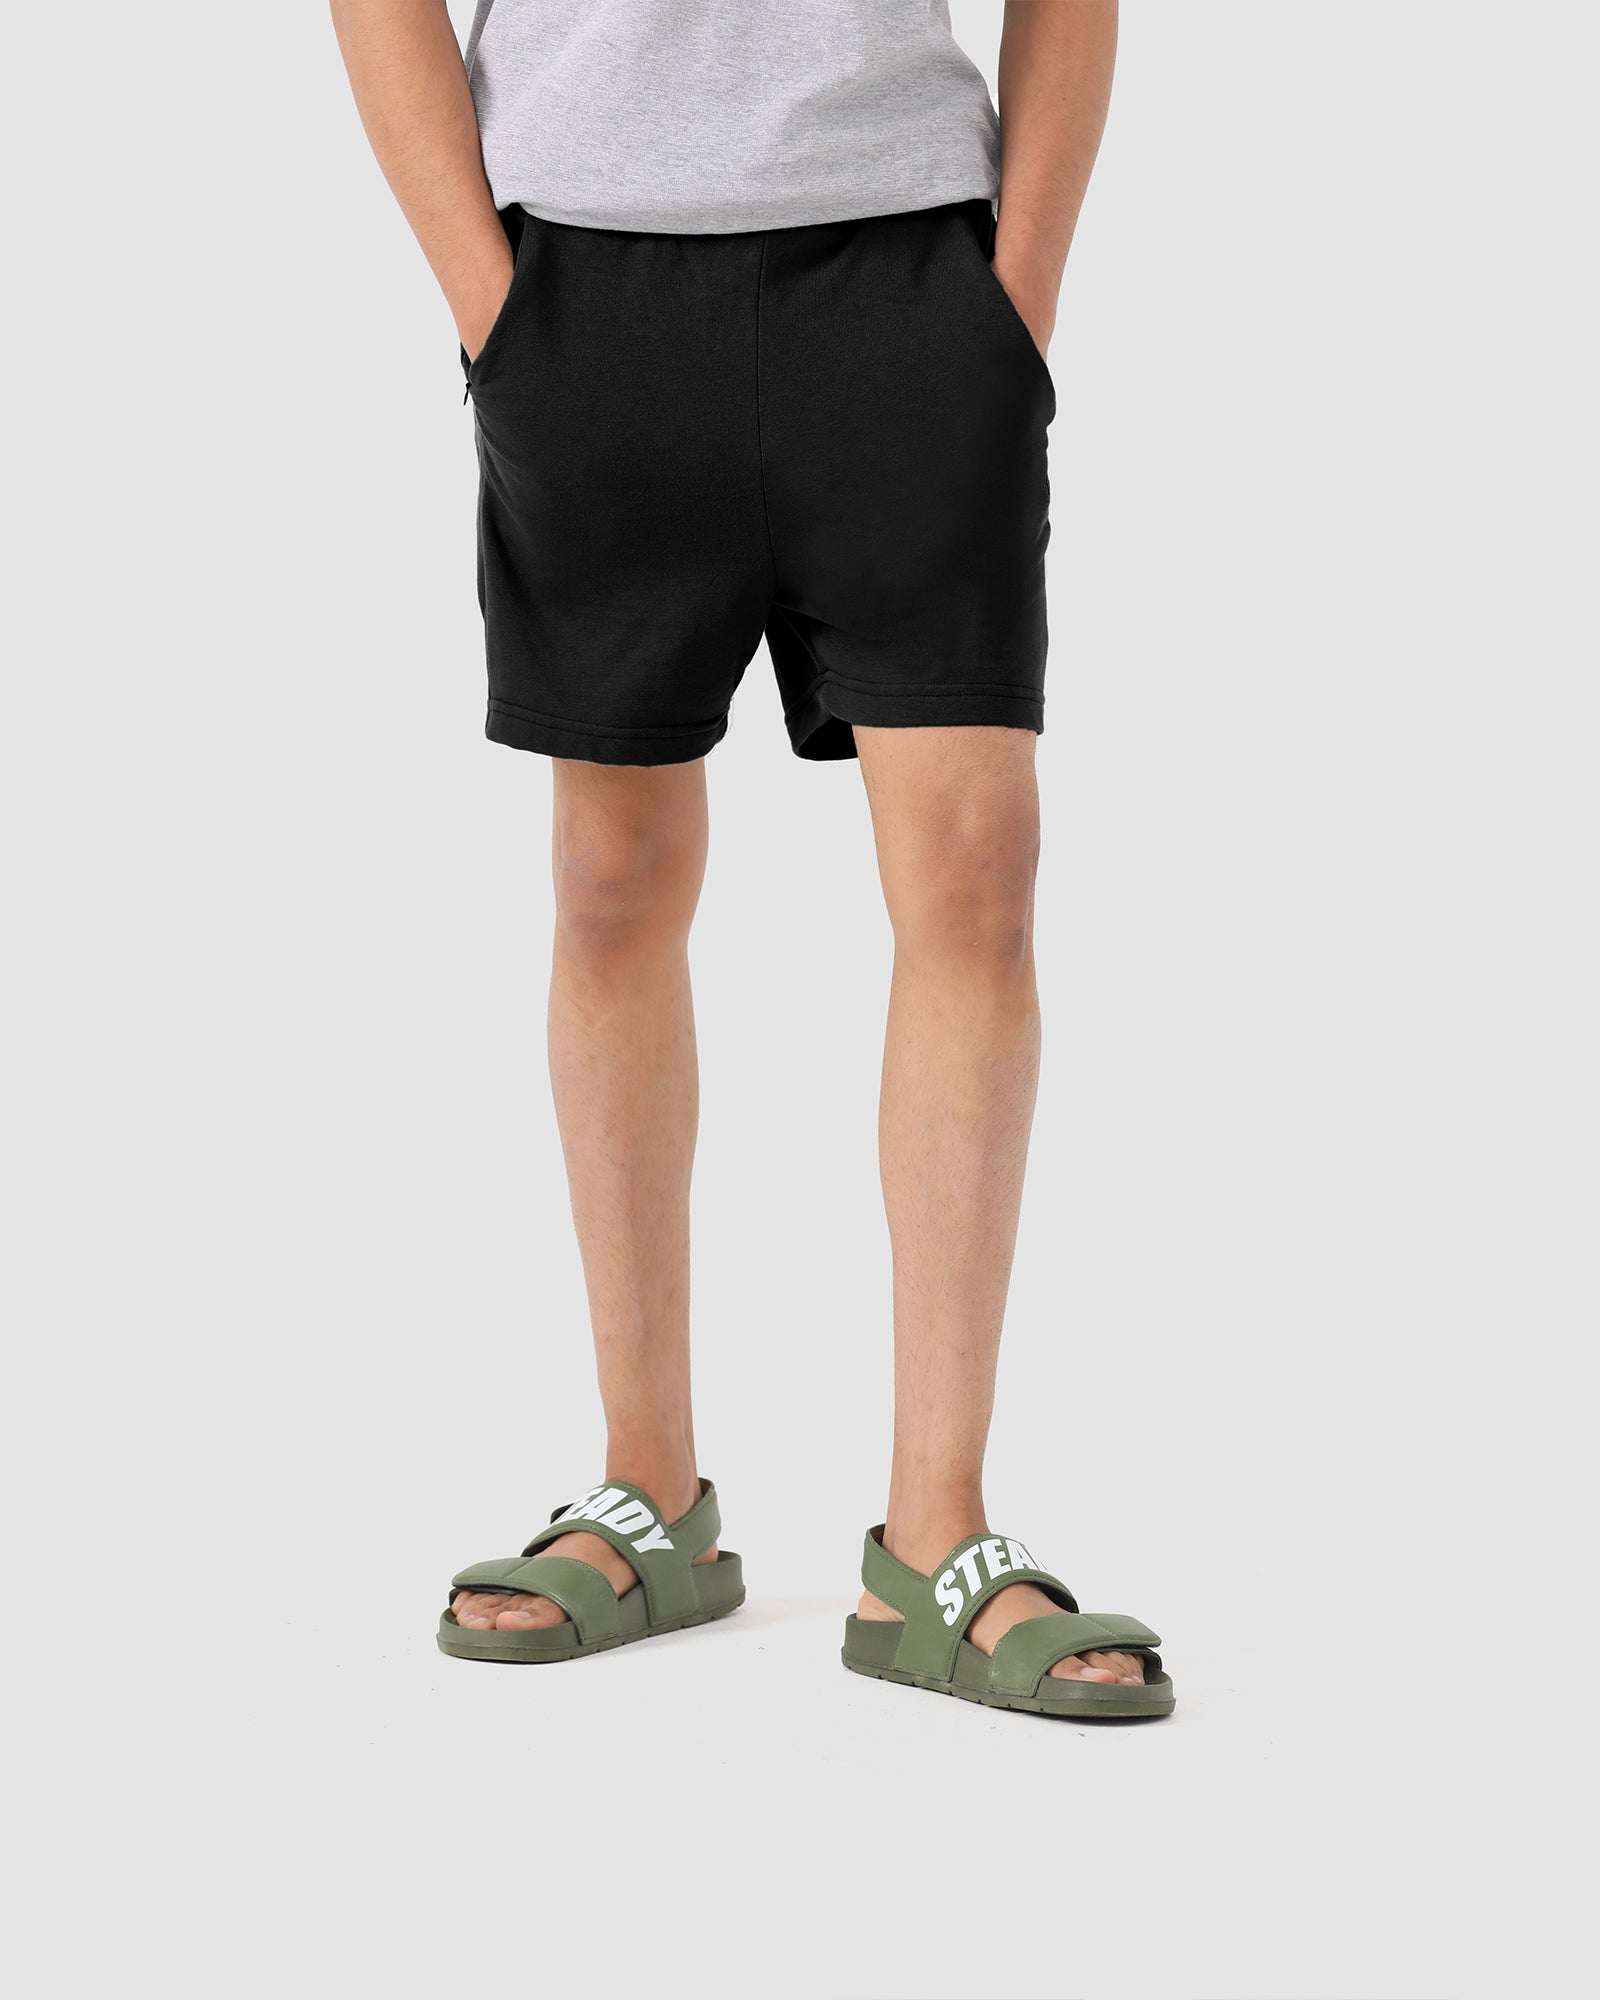 Basic Shorts with Side Pocket Zipper Detail